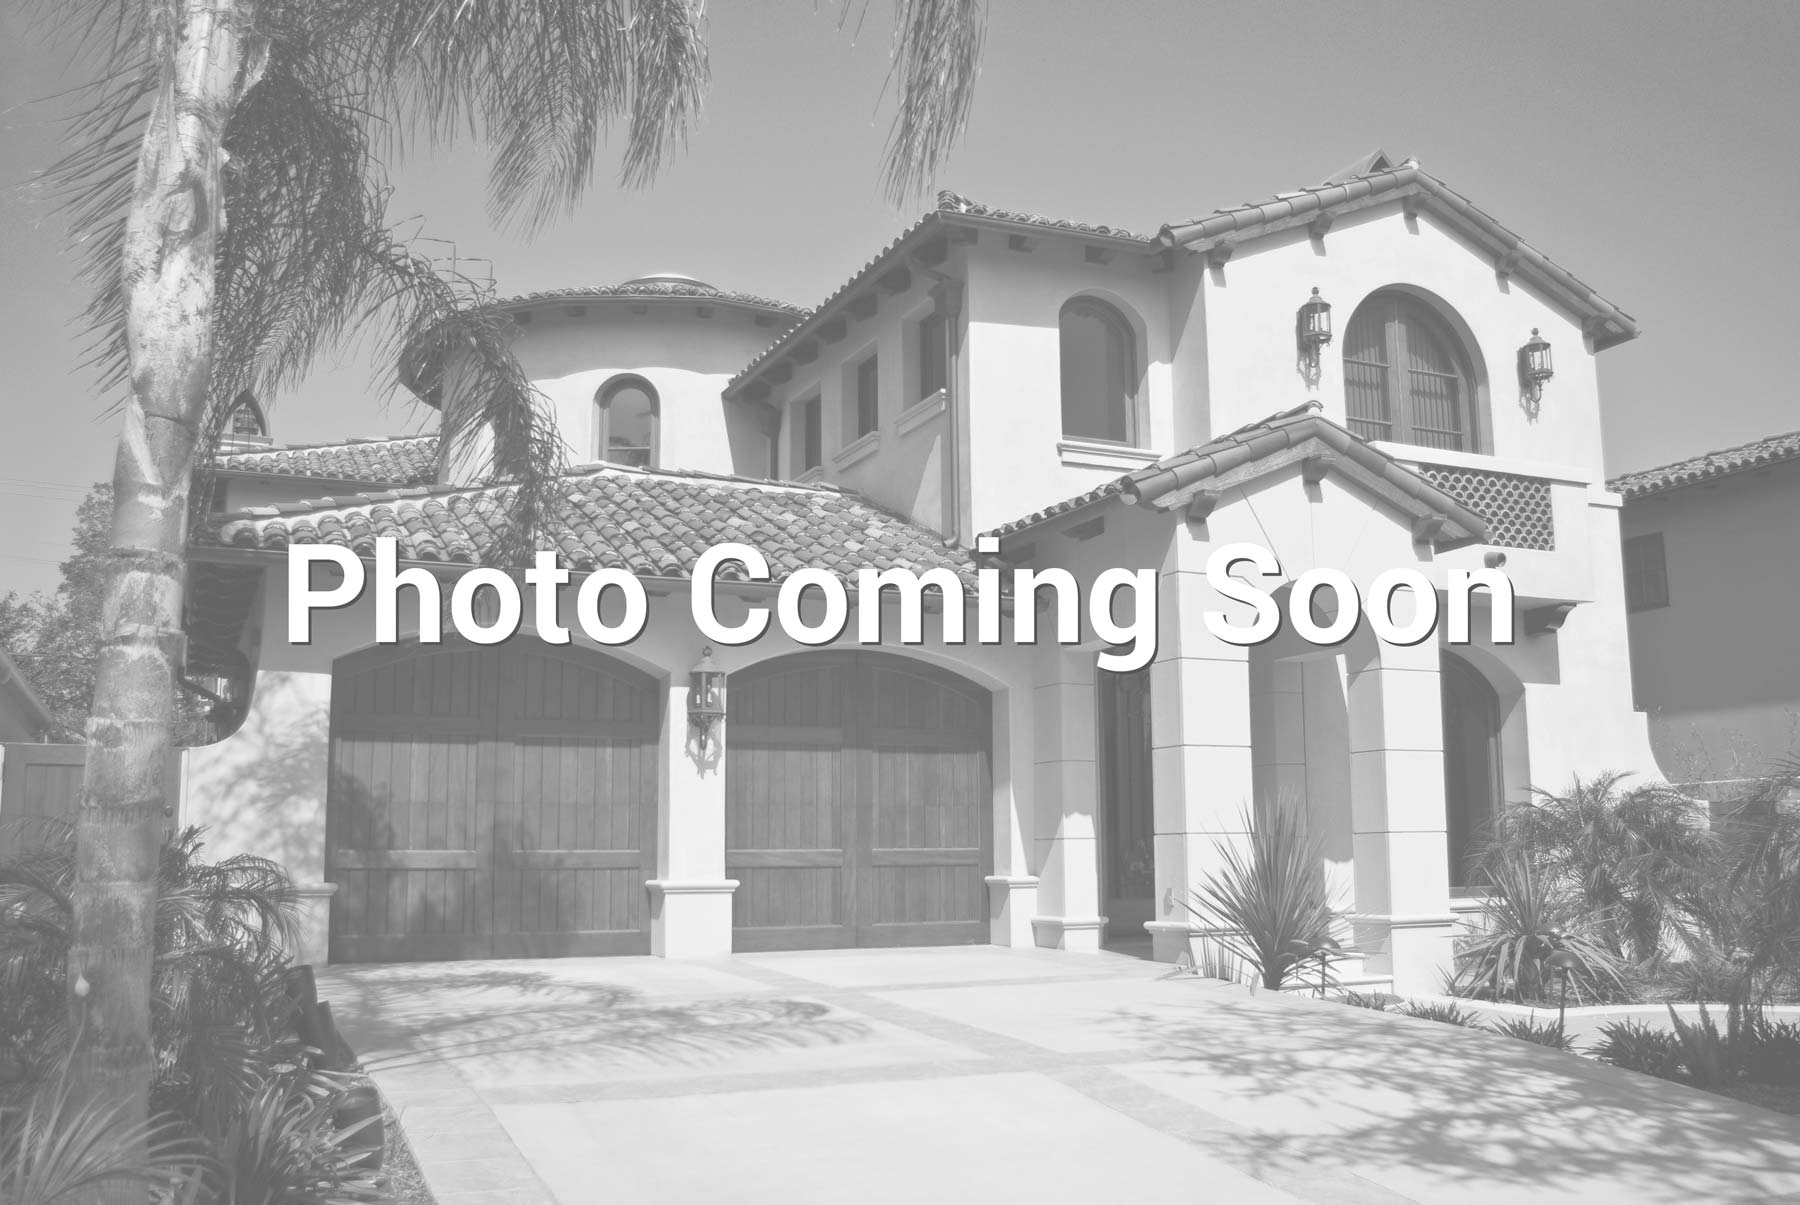 $2,100,000 - 5Br/7Ba - Home for Sale in Alvamar Westwing Mountain Phase 2 Parcel 30, Peoria